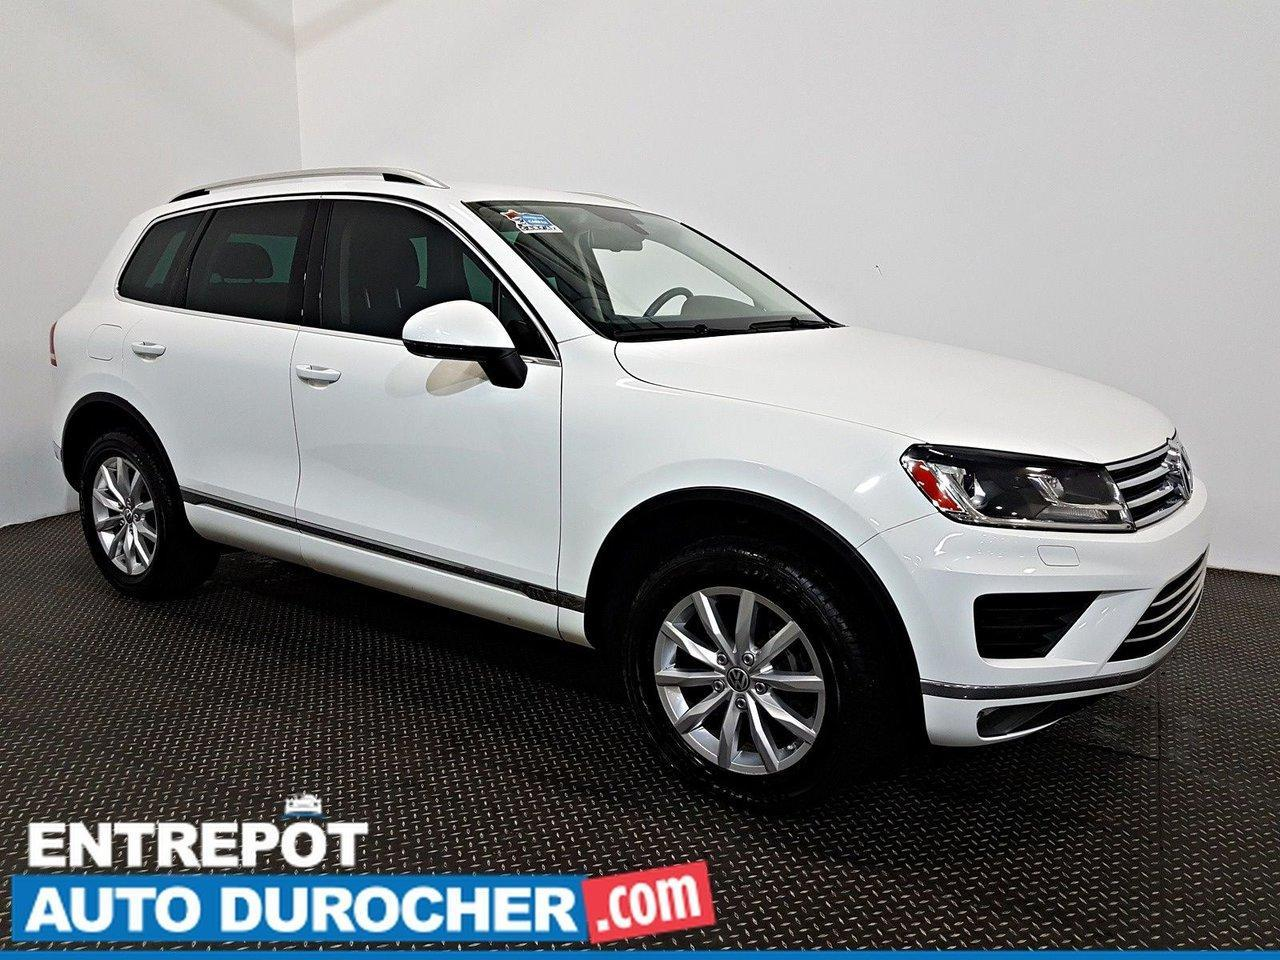 used 2016 volkswagen touareg awd navigation - a c - caméra de recul - cuir for sale in laval, quebec carpages.ca